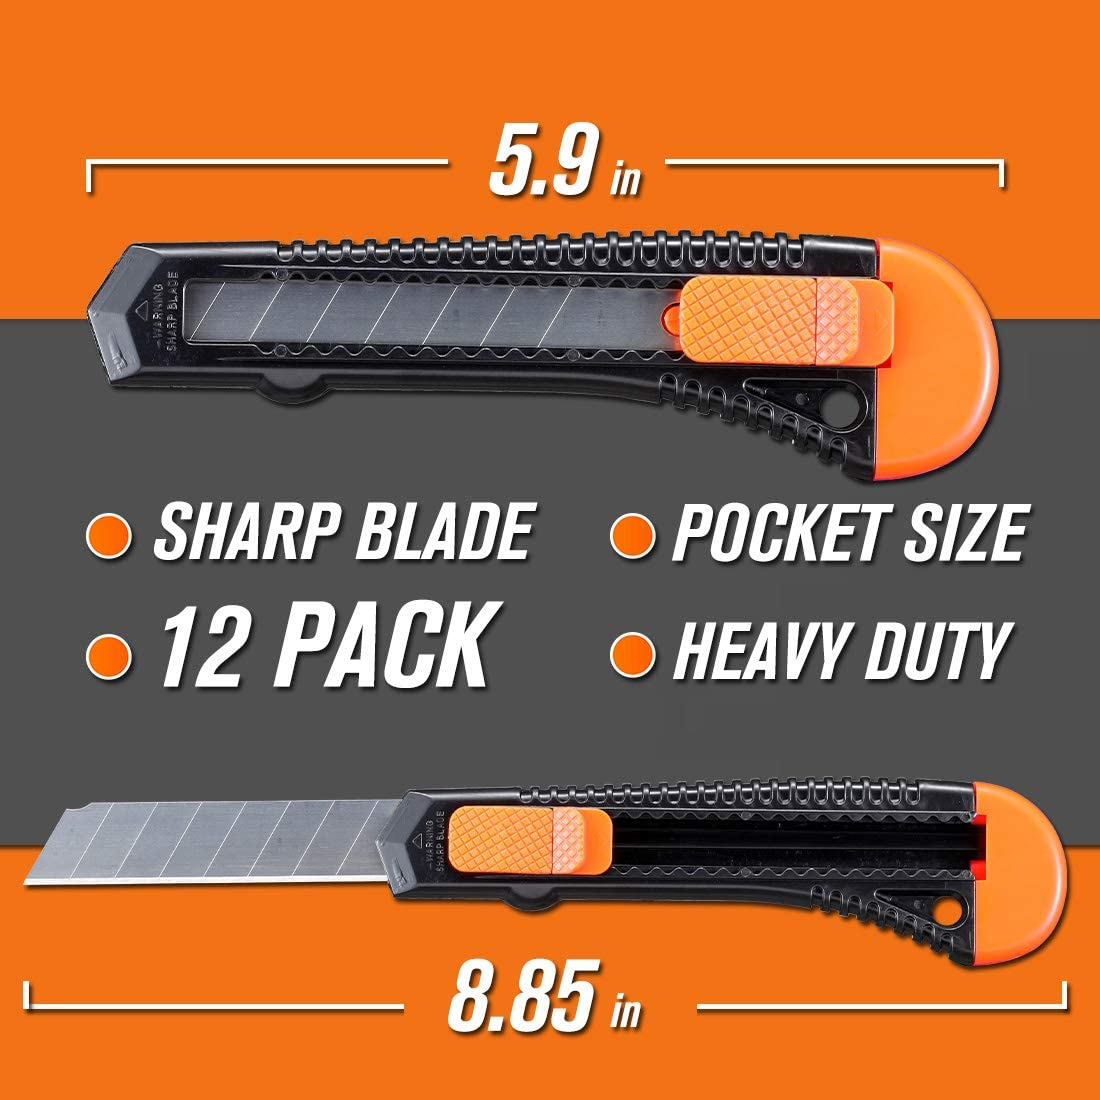 REXBETI 12-Pack Utility Knife, Retractable Box Cutter for Cartons, Cardboard and Boxes, 18mm Wider Razor Sharp Blade, Smooth Mechanism, Perfect for Office and Home use: Office Products